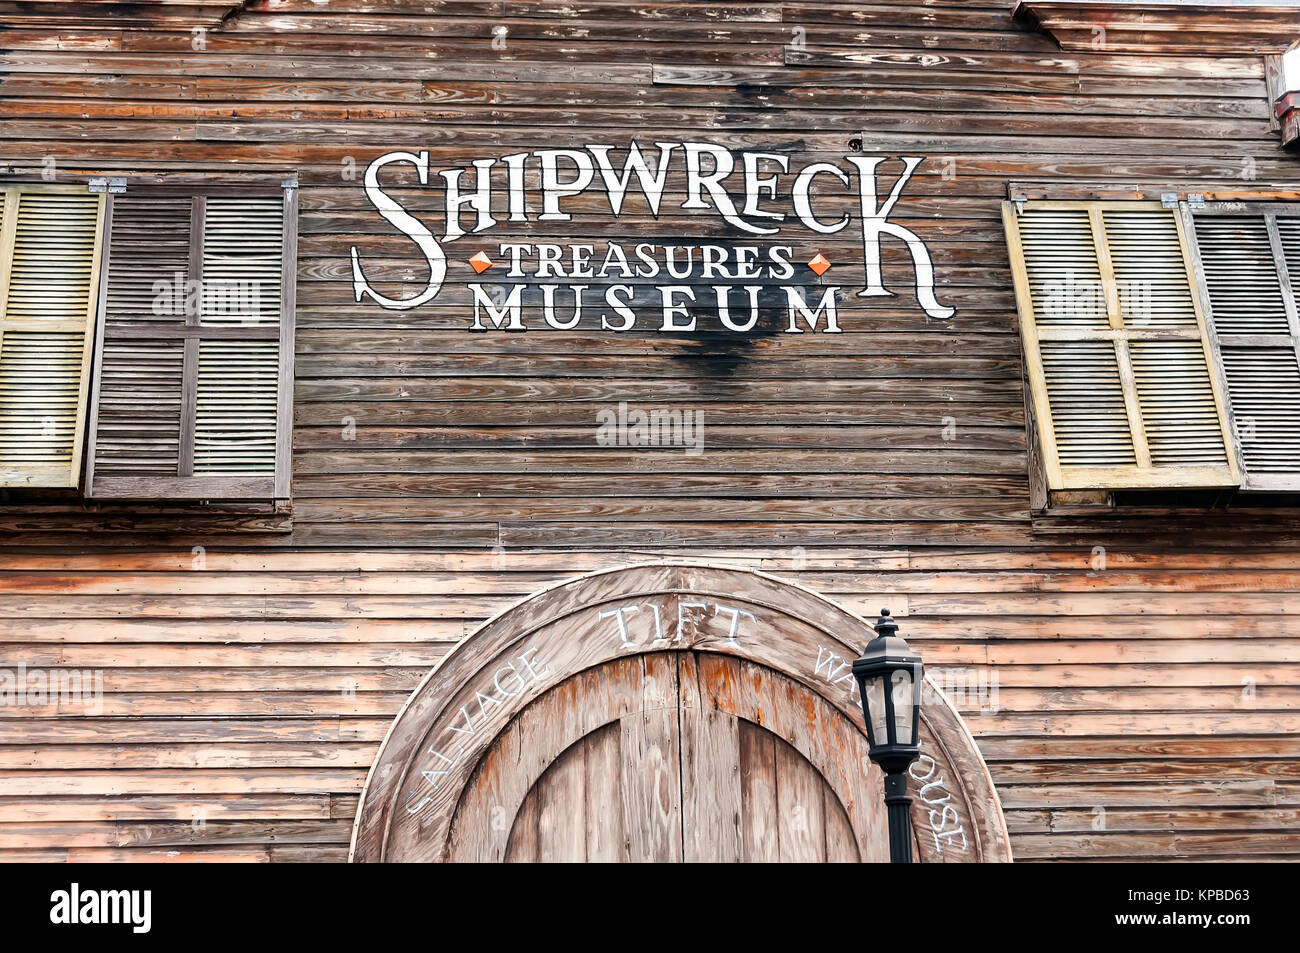 Shipwreck Treasures Museum old wooden exterior (1849) Key West Florida - Stock Image